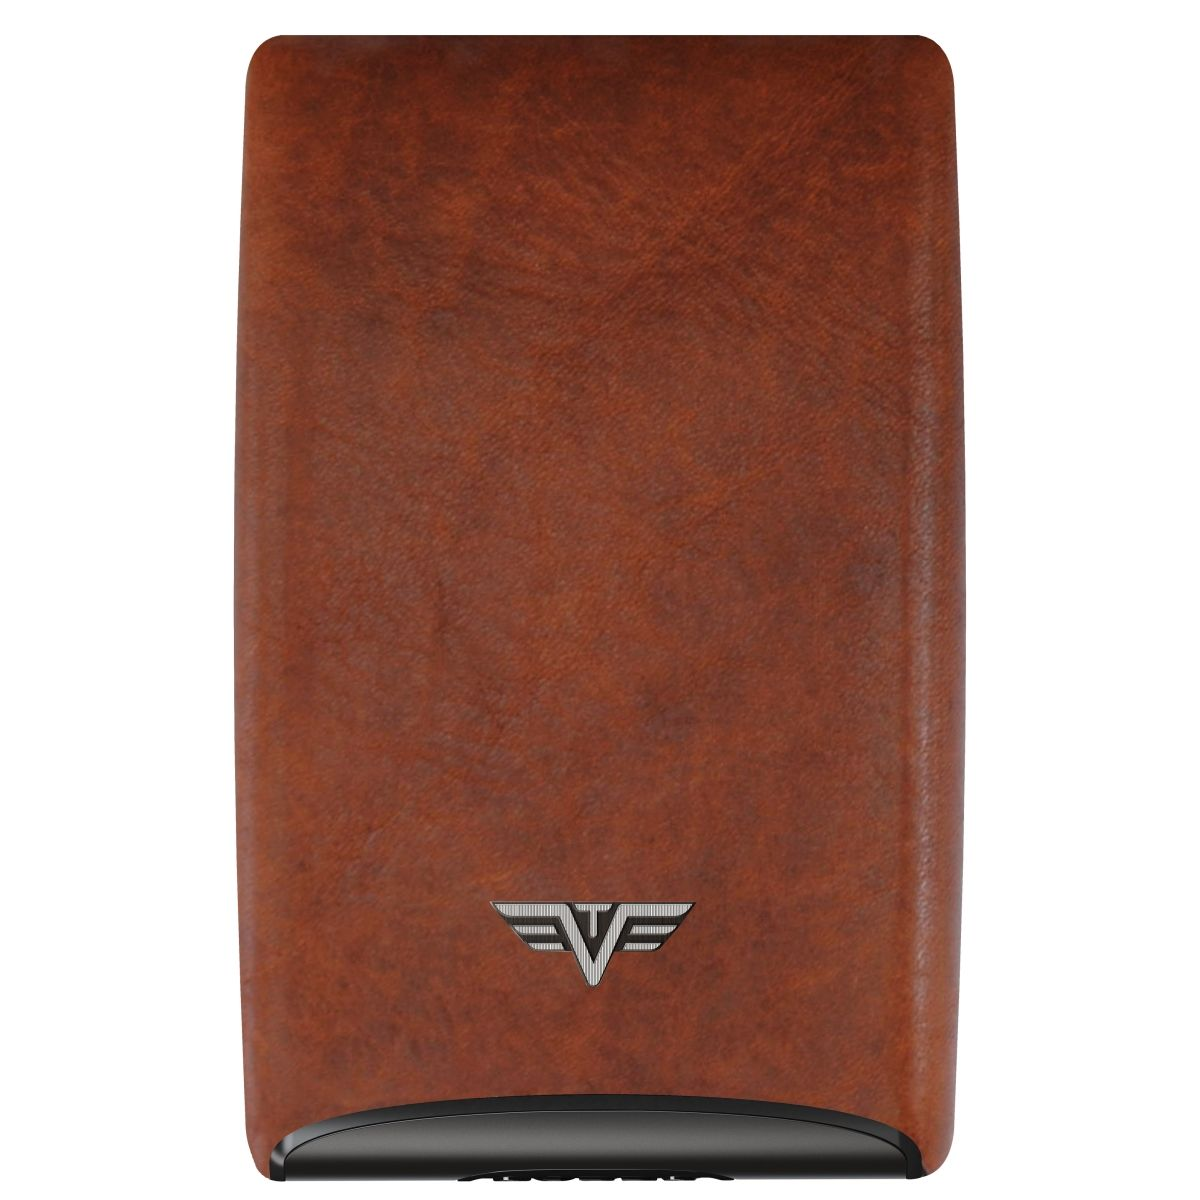 TRU VIRTU Aluminum Card Case Fun Leather Line - Natural Brown